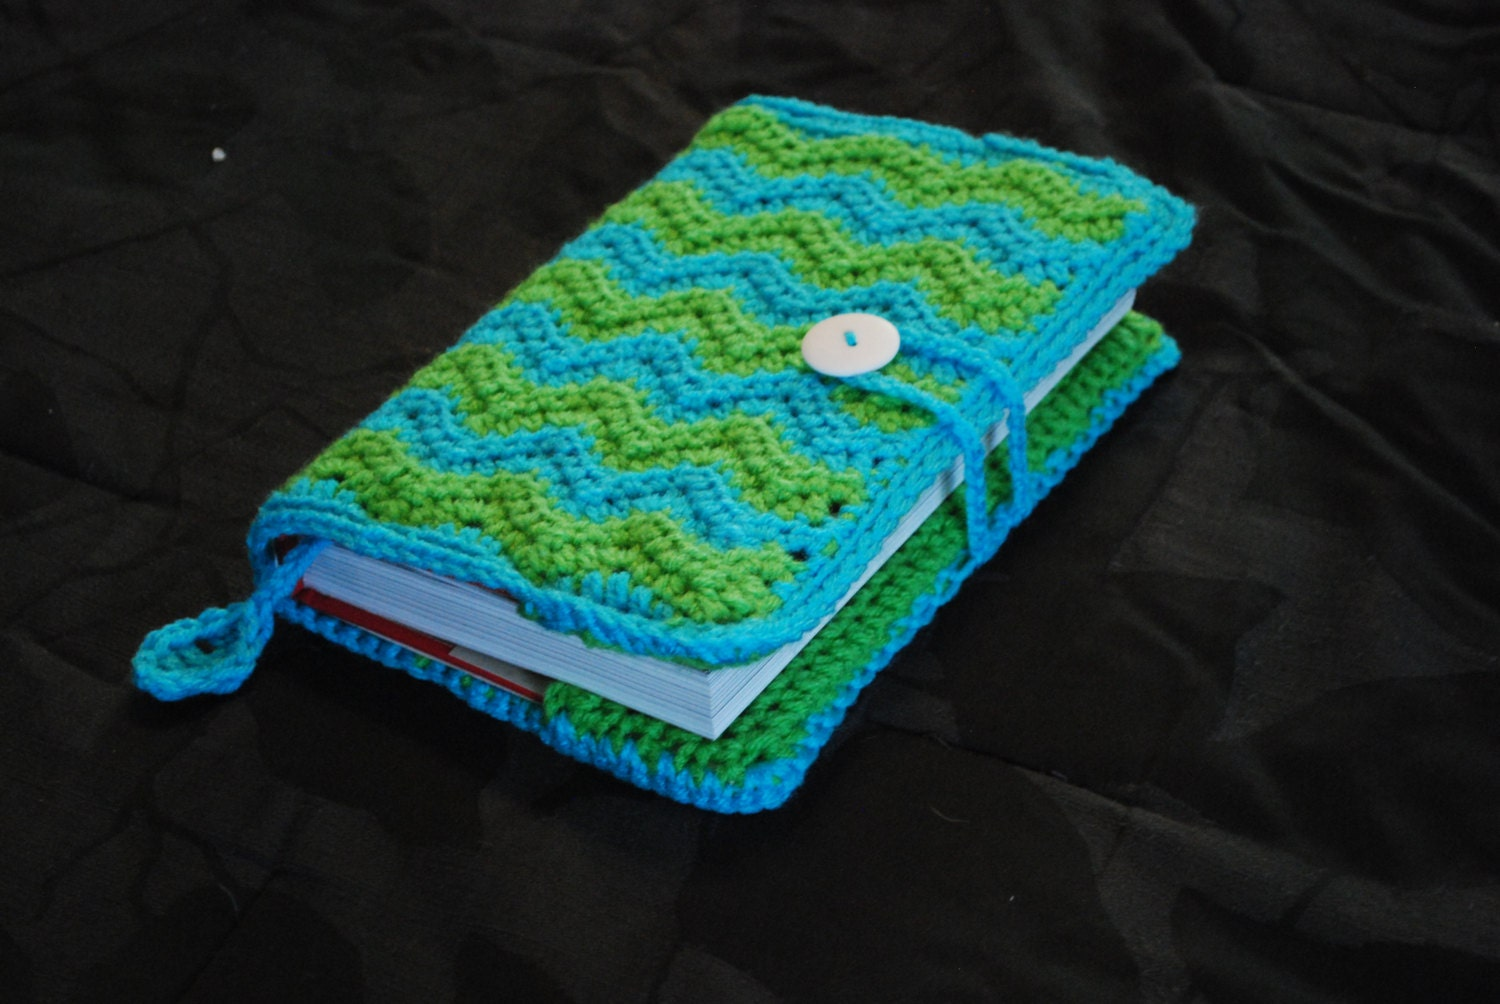 Book Cover Crochet Uk : Crochet book cover chevron pattern with loop and button